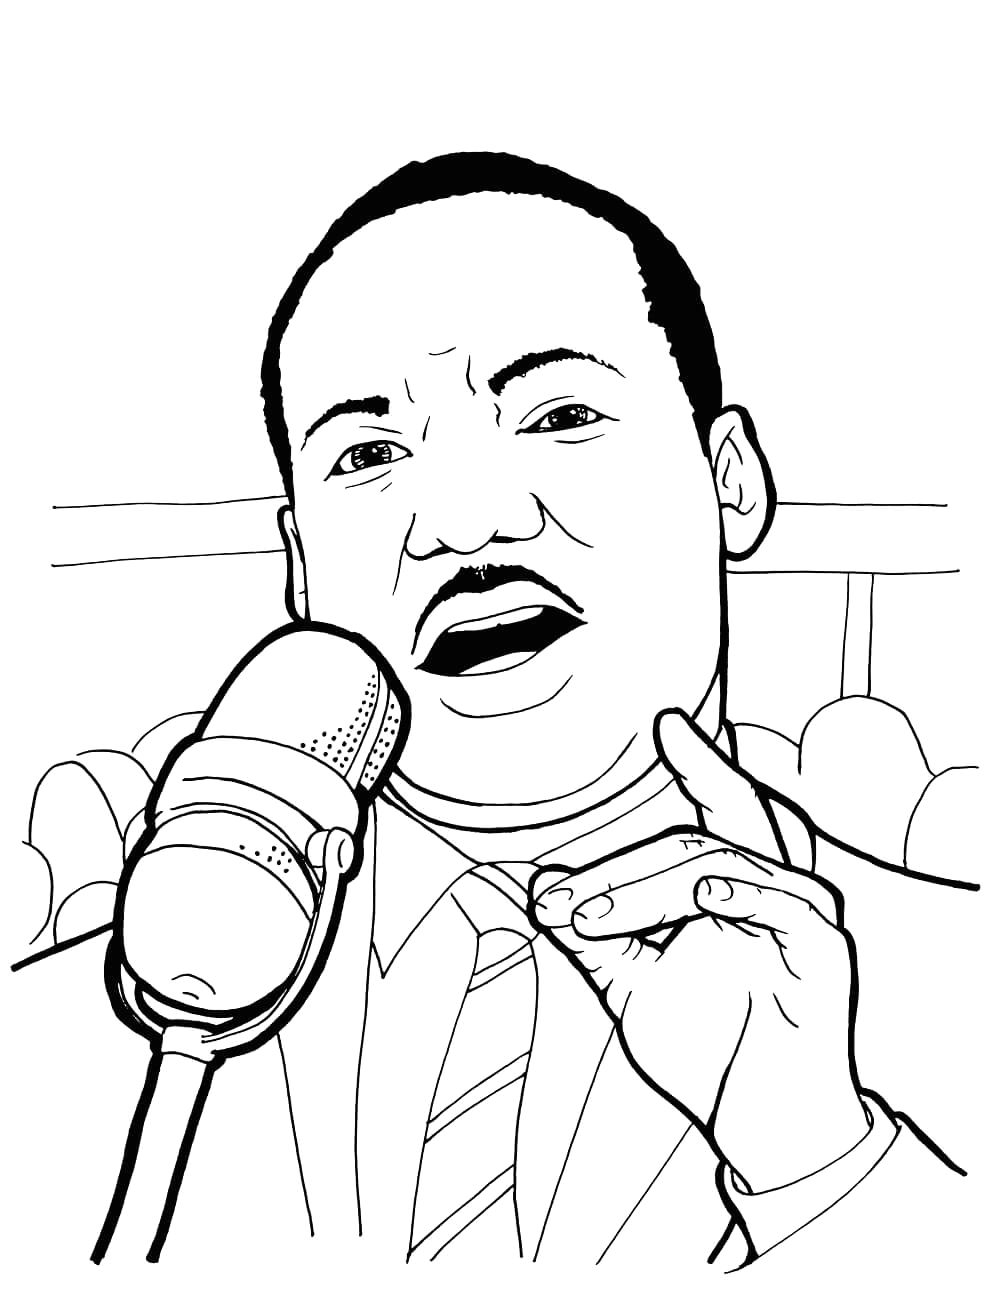 Martin Luther King Jr Coloring Pages to Print Martin Coloring Pages Learny Kids